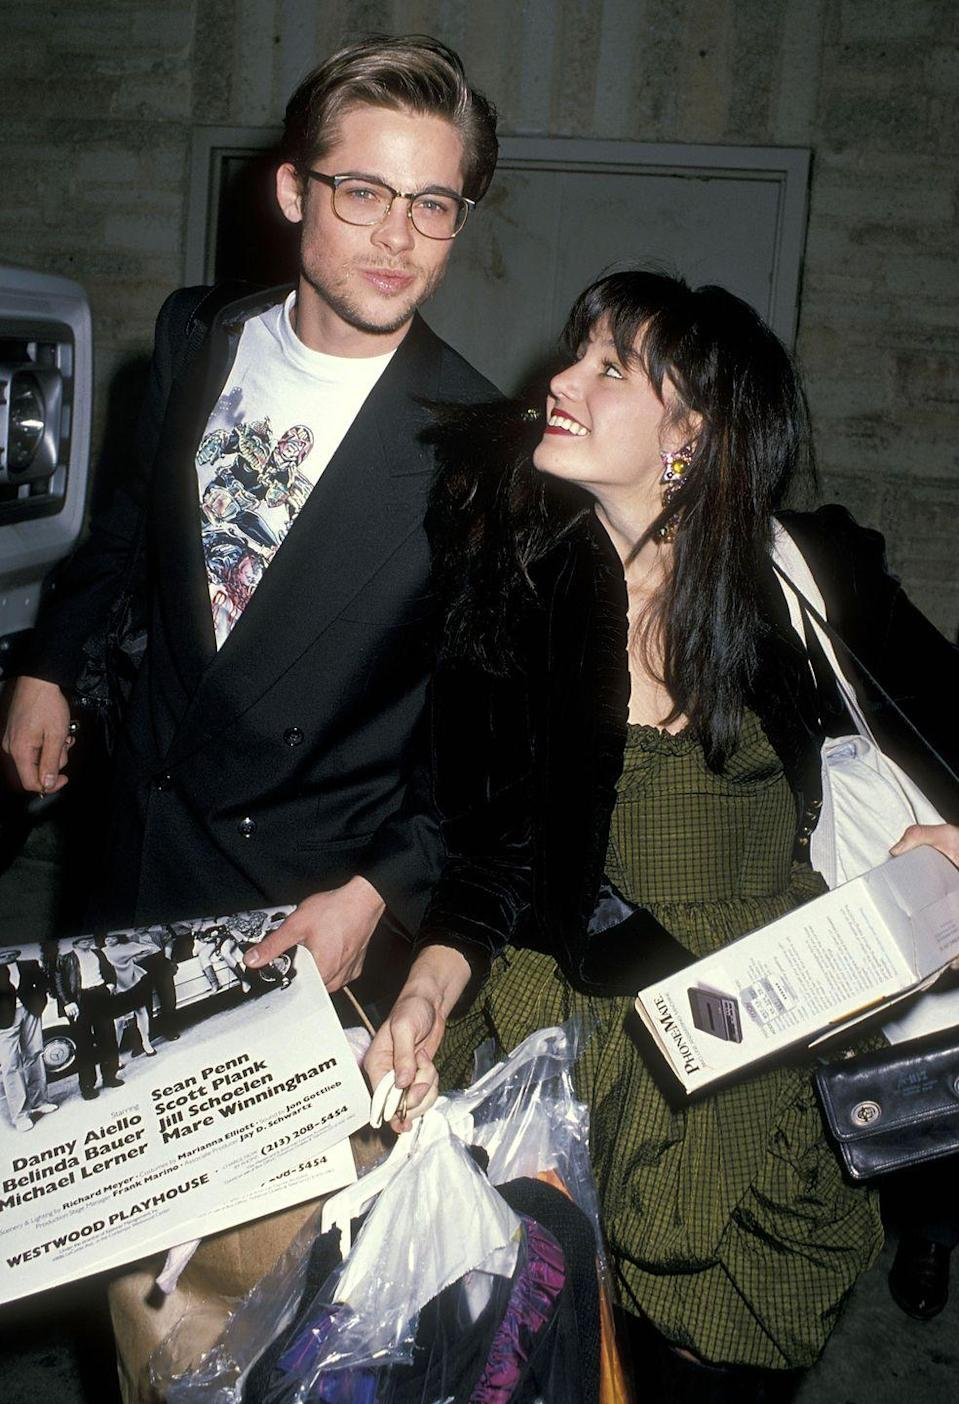 """<p>In 1989, Pitt and Schoelen got engaged, but it only lasted three months. In a <a href=""""https://www.ctvnews.ca/brad-pitt-recalls-being-dumped-by-ex-fiancee-jill-schoelen-1.633066"""" rel=""""nofollow noopener"""" target=""""_blank"""" data-ylk=""""slk:2011 interview"""" class=""""link rapid-noclick-resp"""">2011 interview</a>, Pitt revealed that he went to visit his then-fiancée in Budapest where she was filming a movie. When he got there, she revealed that she'd fallen in love with the director of her movie and the two called it quits. Pitt later said that Schoelen was his first big heartbreak. </p>"""